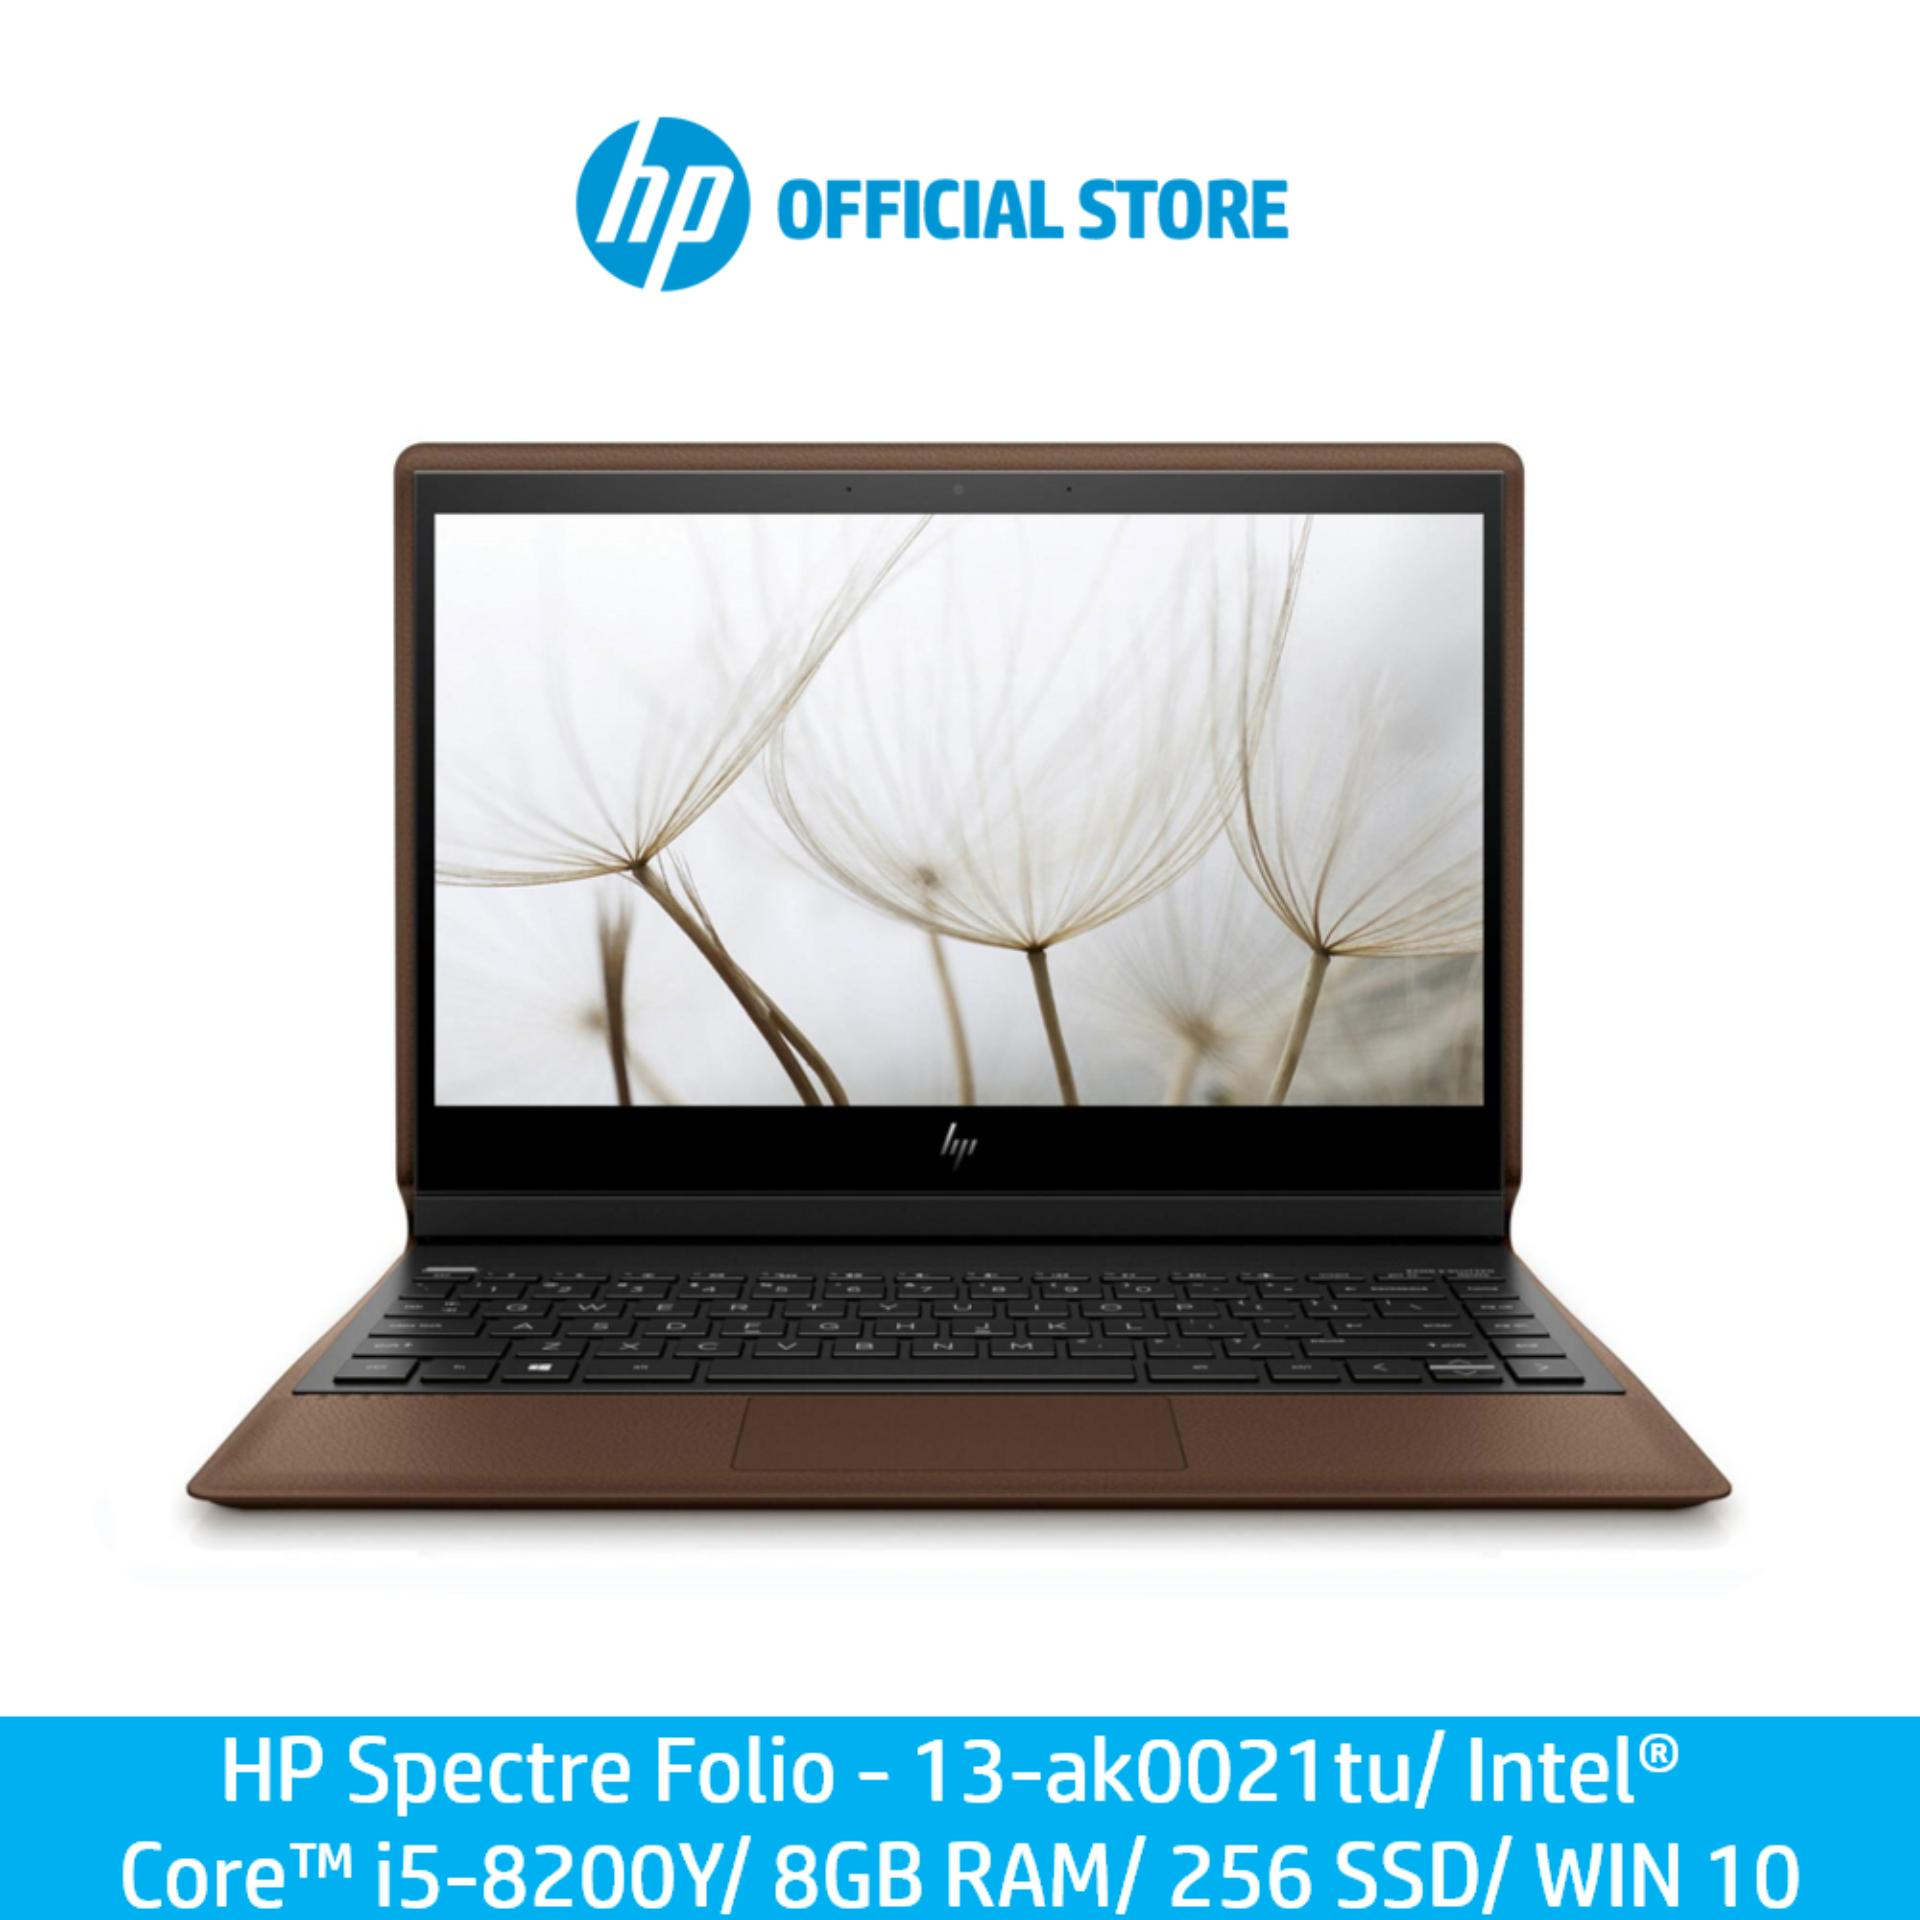 HP Spectre Folio Laptop - 13-ak0021tu Intel Core i5-8200Y Processor 8GB LPDDR3-1866 SDRAM 256GB PCIe NVMe M.2 SSD Window 10